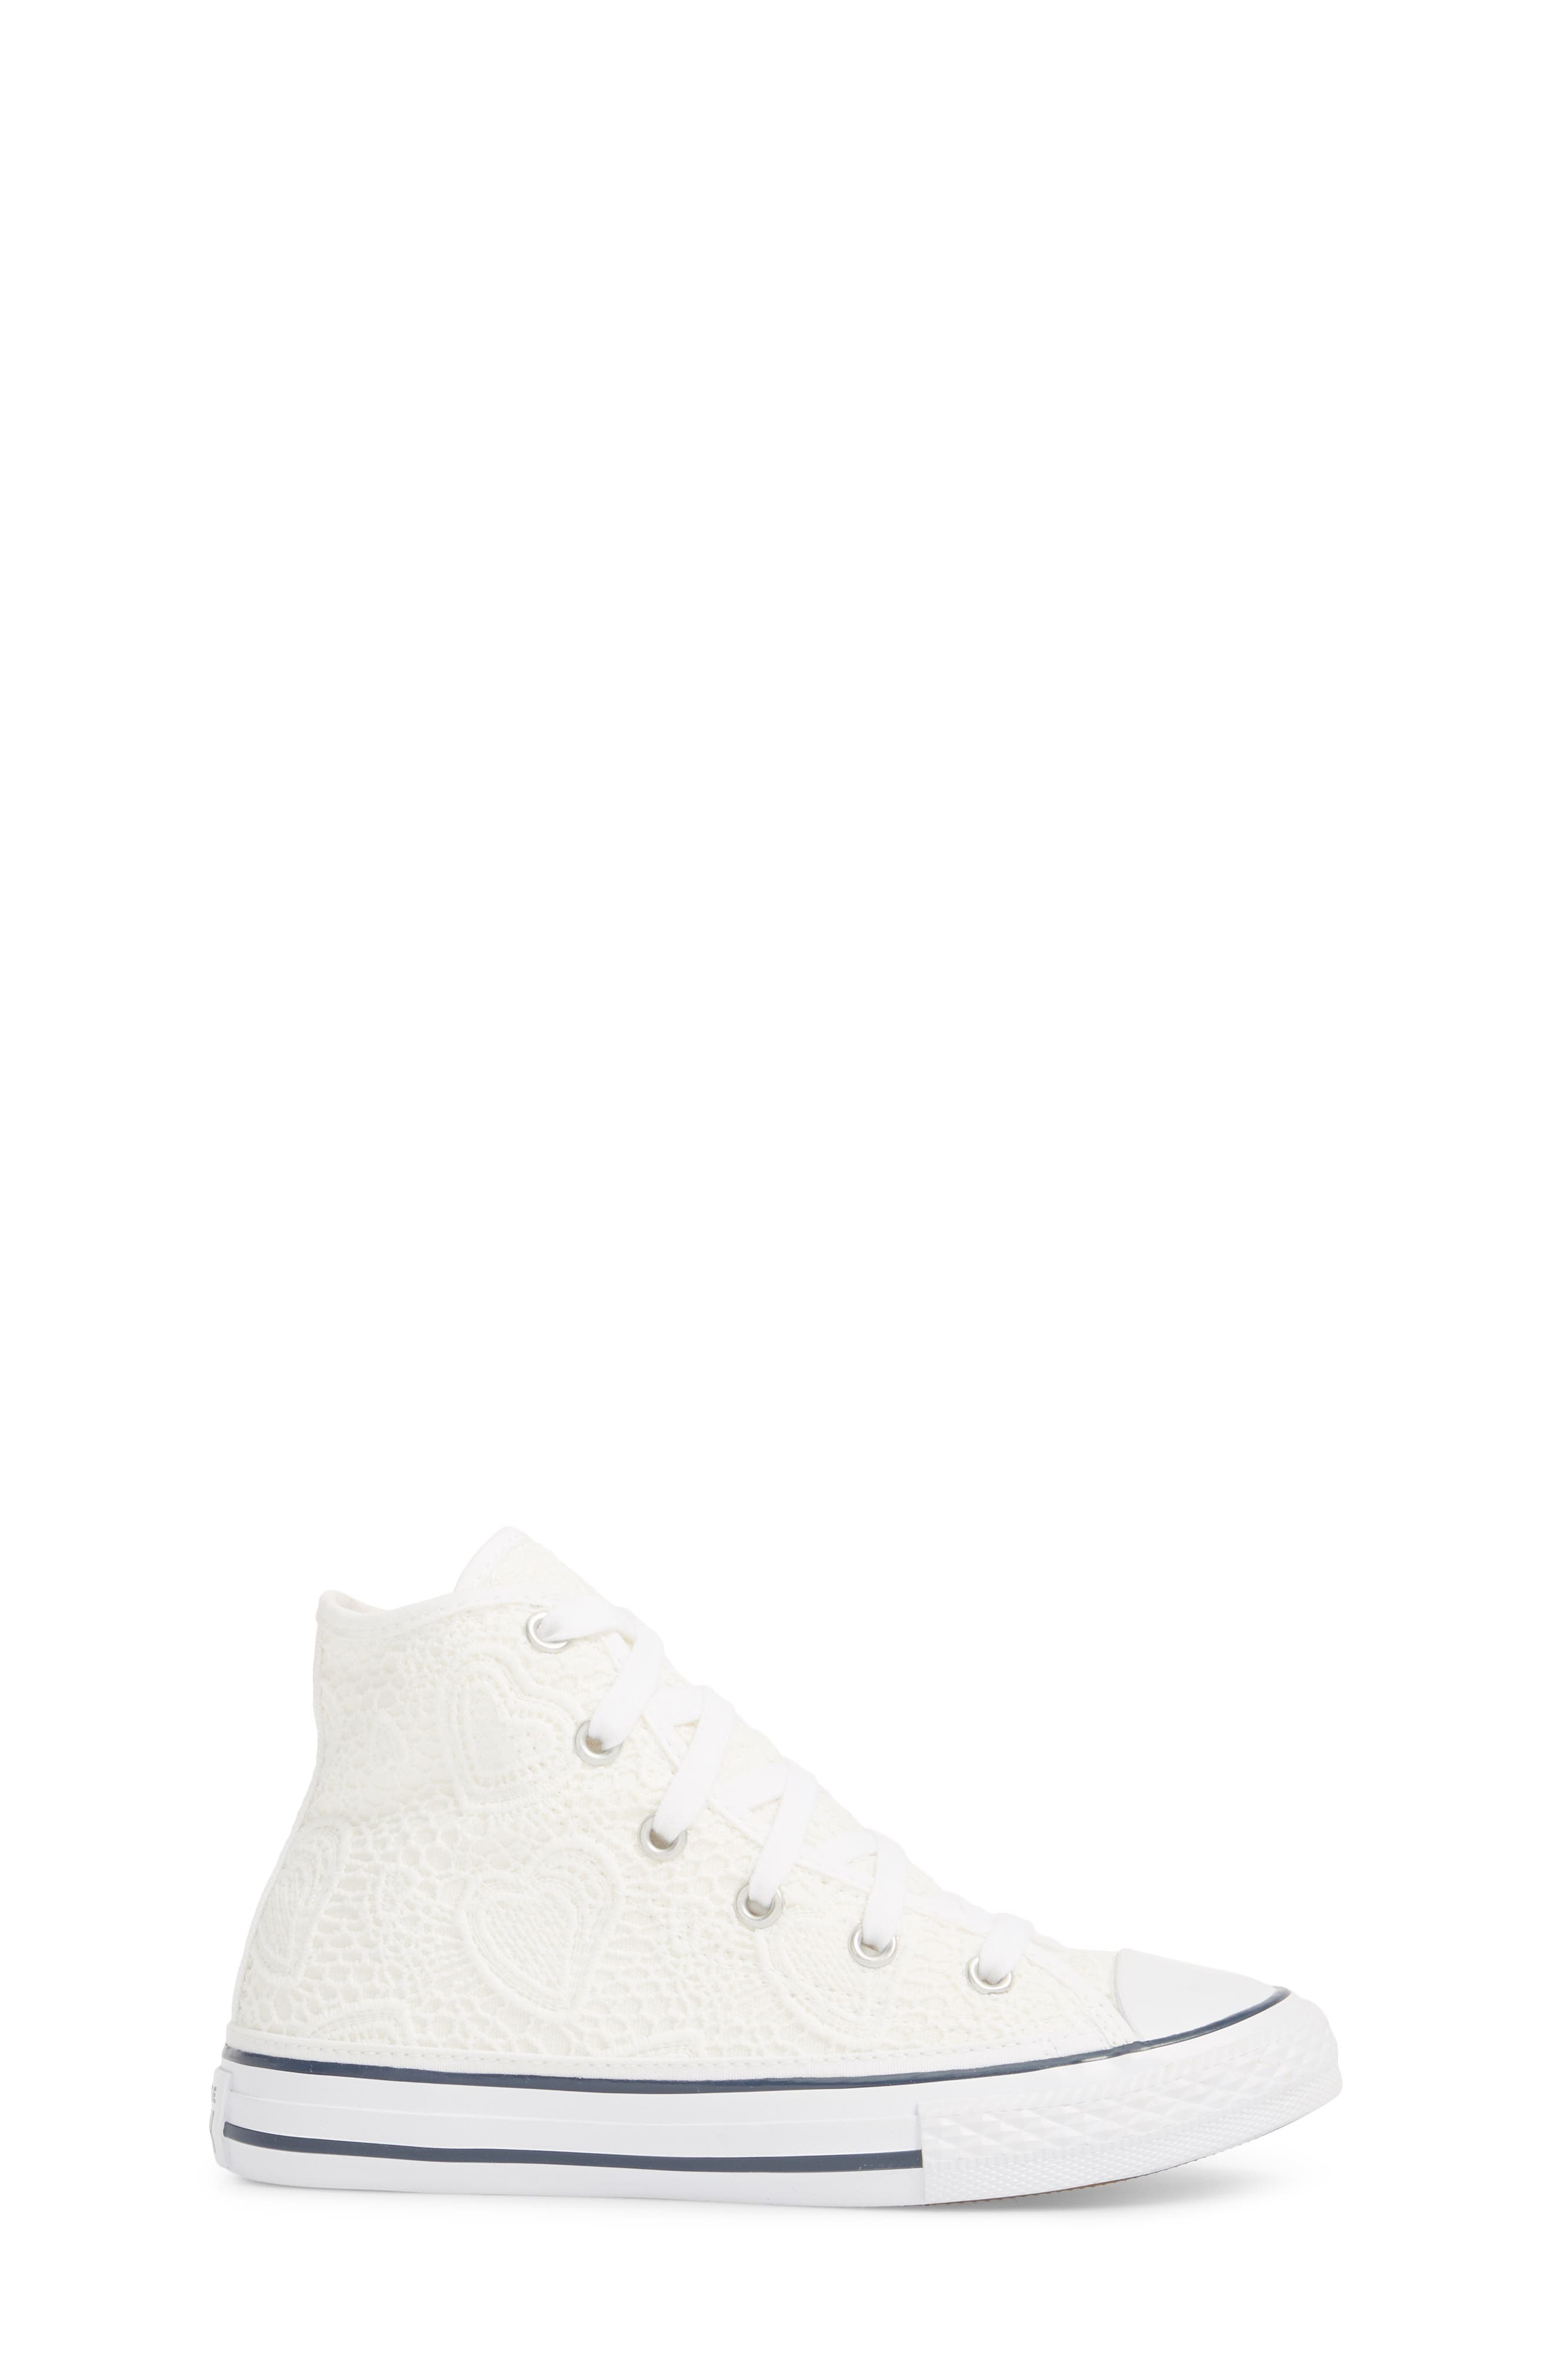 Chuck Taylor<sup>®</sup> All Star<sup>®</sup> Crochet High Top Sneaker,                             Alternate thumbnail 3, color,                             White